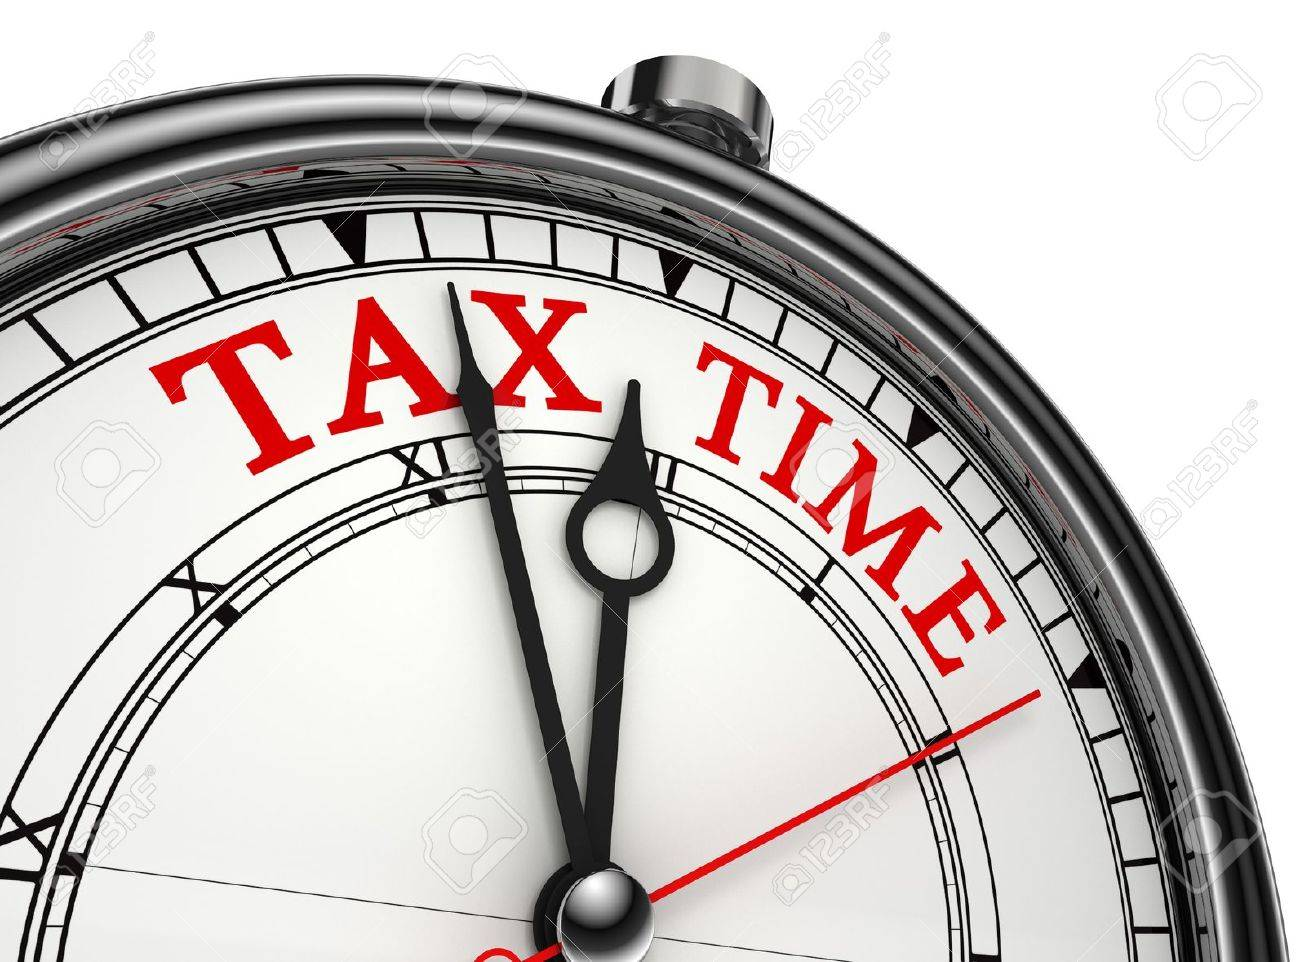 tax time concept clock closeup isolated on white background with red and black words Stock Photo - 12727898